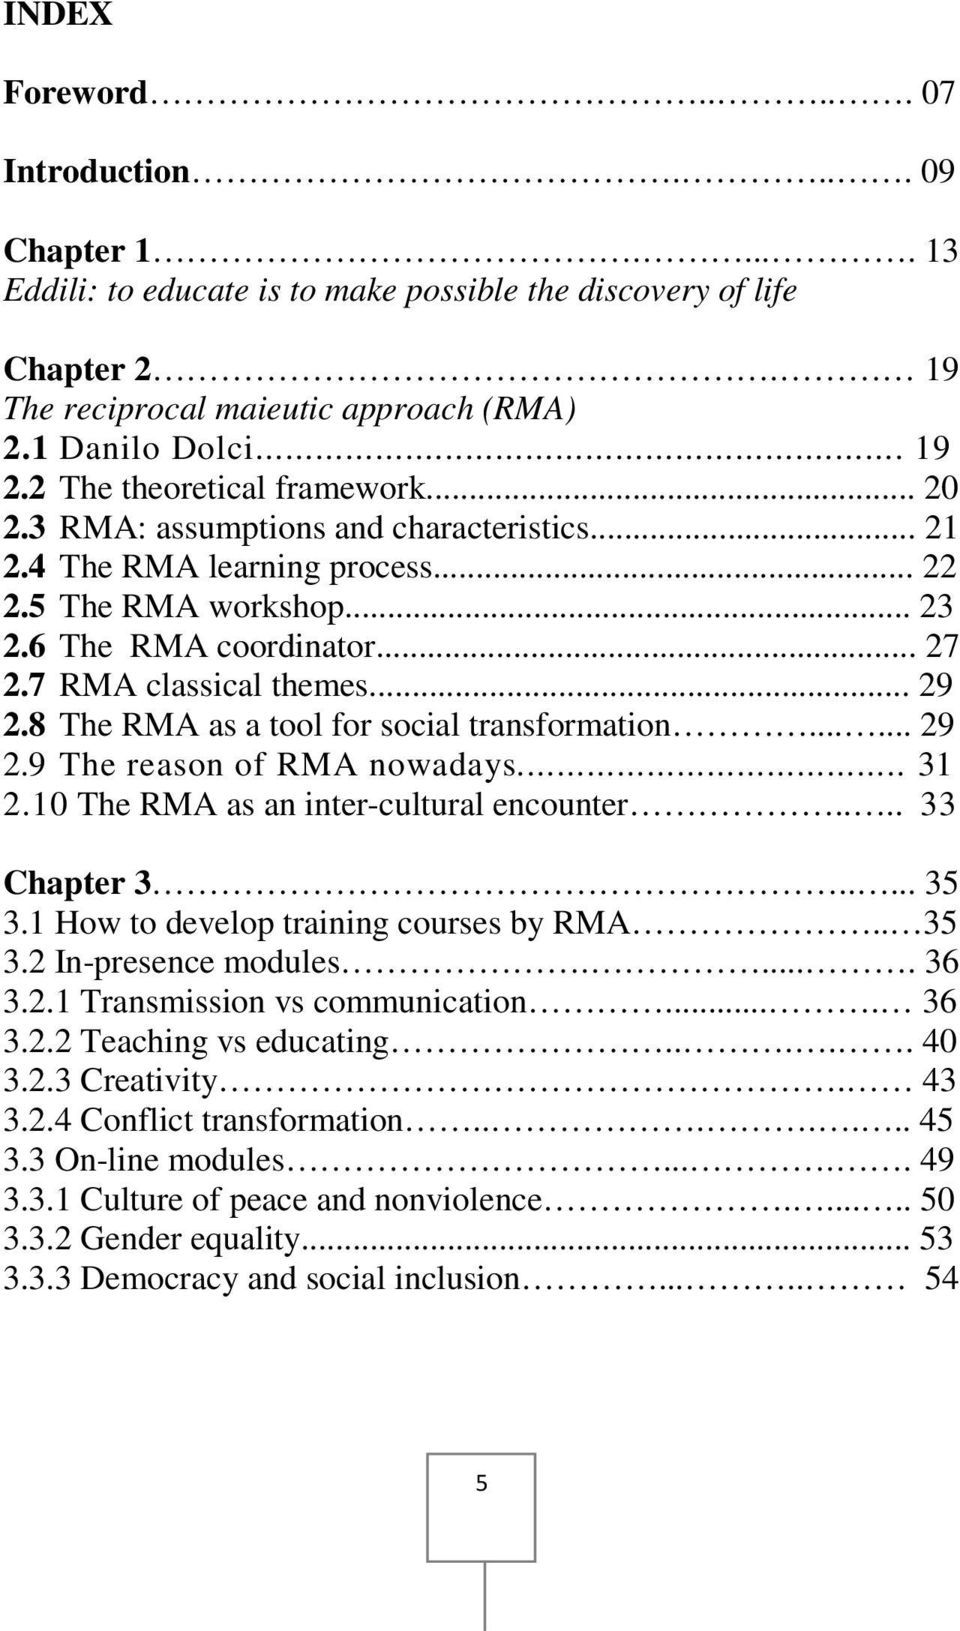 .. 29 2.8 The RMA as a tool for social transformation...... 29 2.9 The reason of RMA nowadays... 31 2.10 The RMA as an inter-cultural encounter.... 33 Chapter 3..... 35 3.